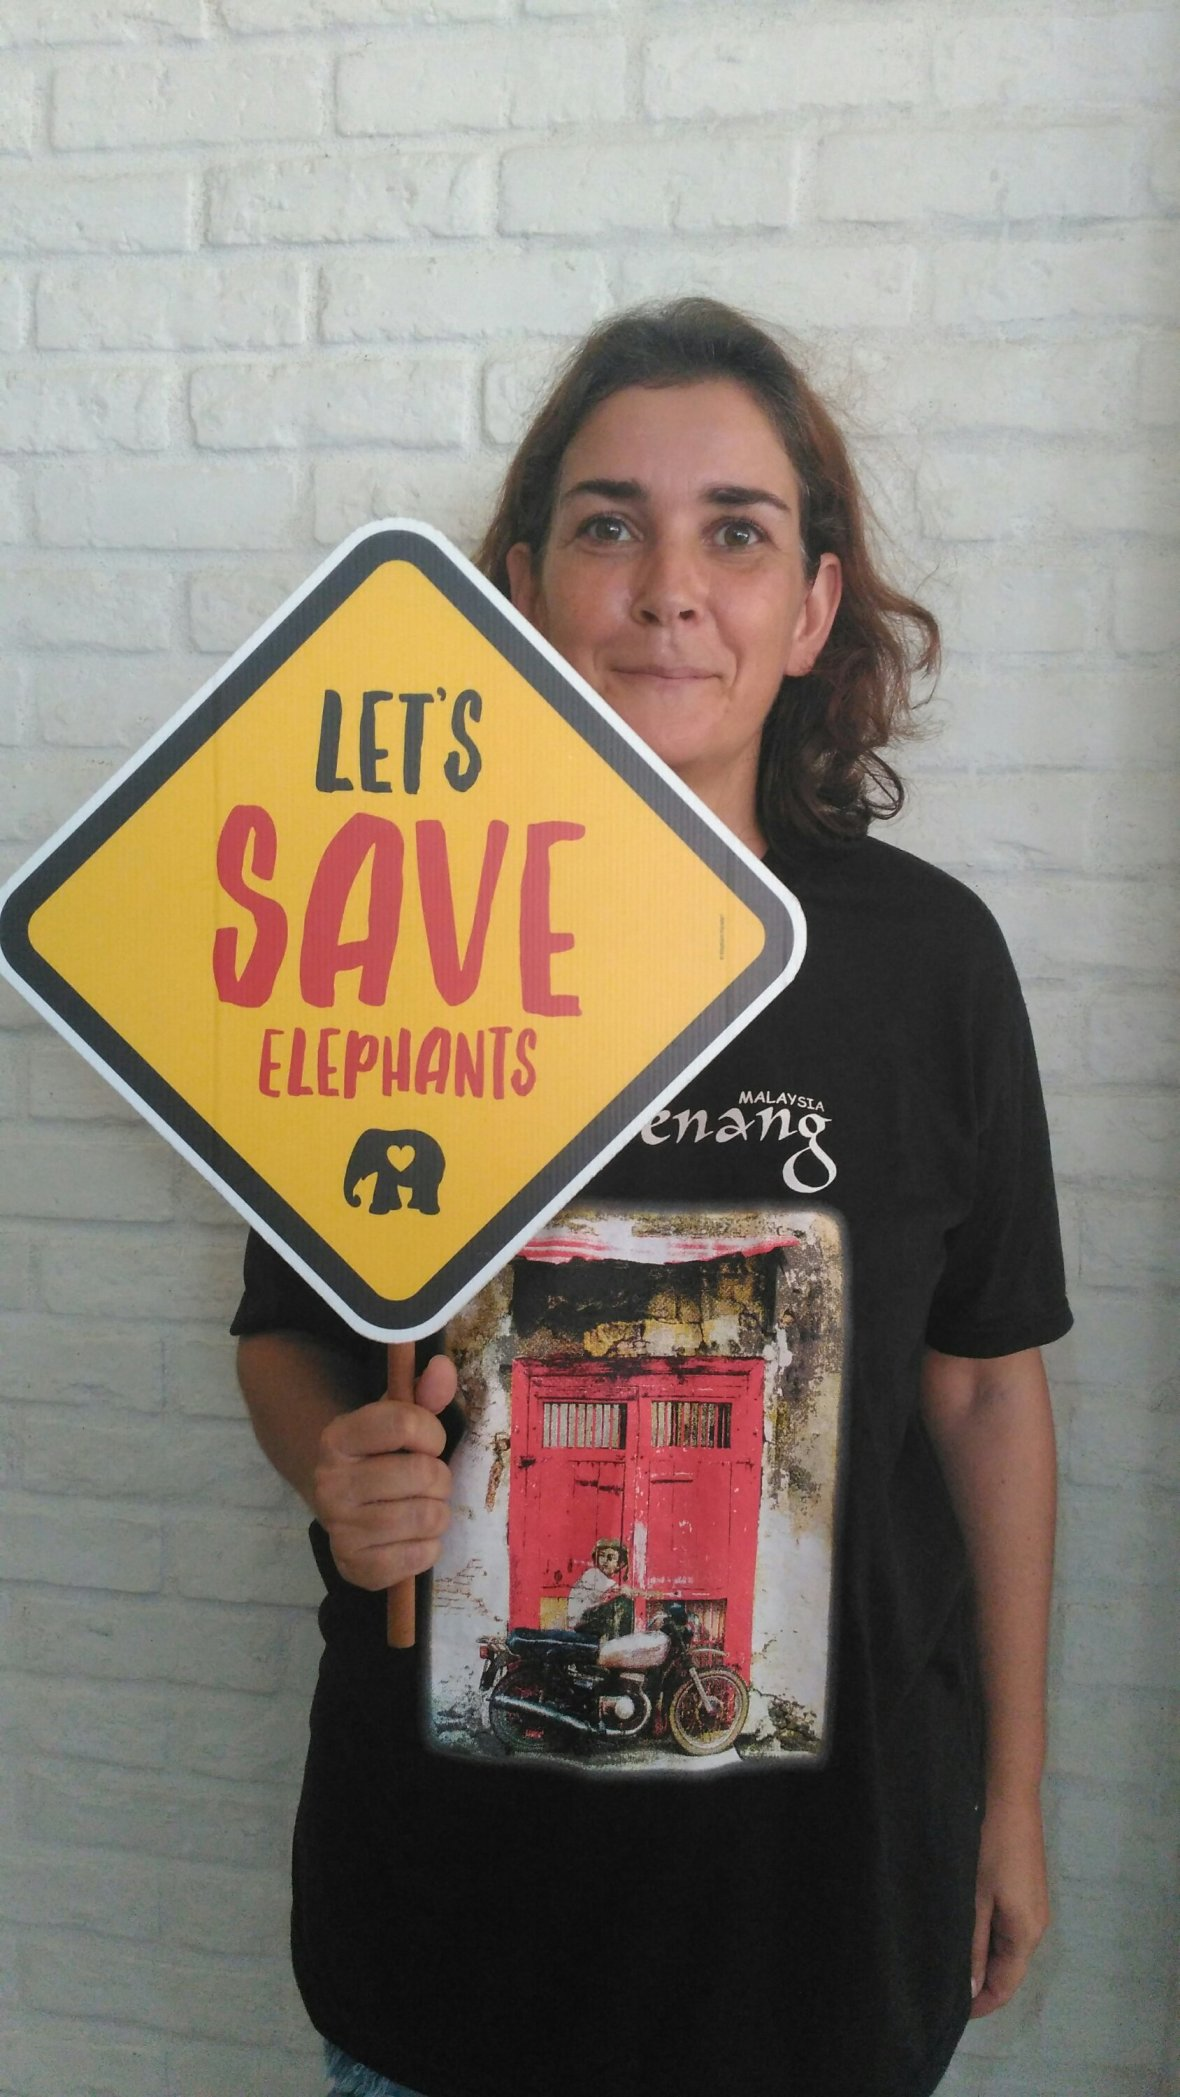 Let's save elephants.